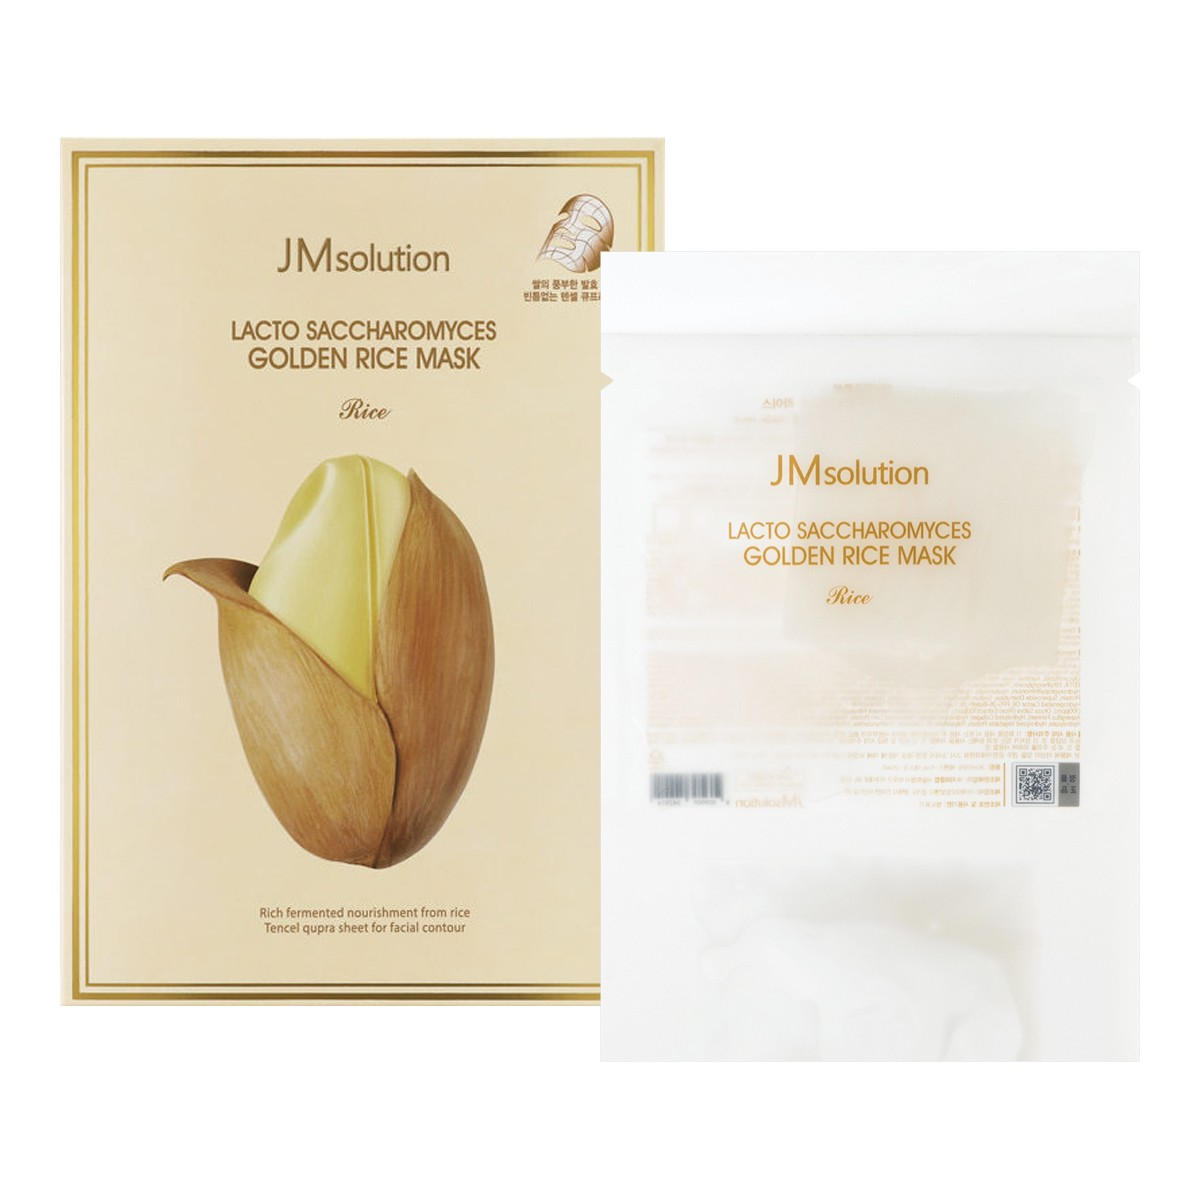 JM solution Lacto Saccharomyces Golden Rice Mask